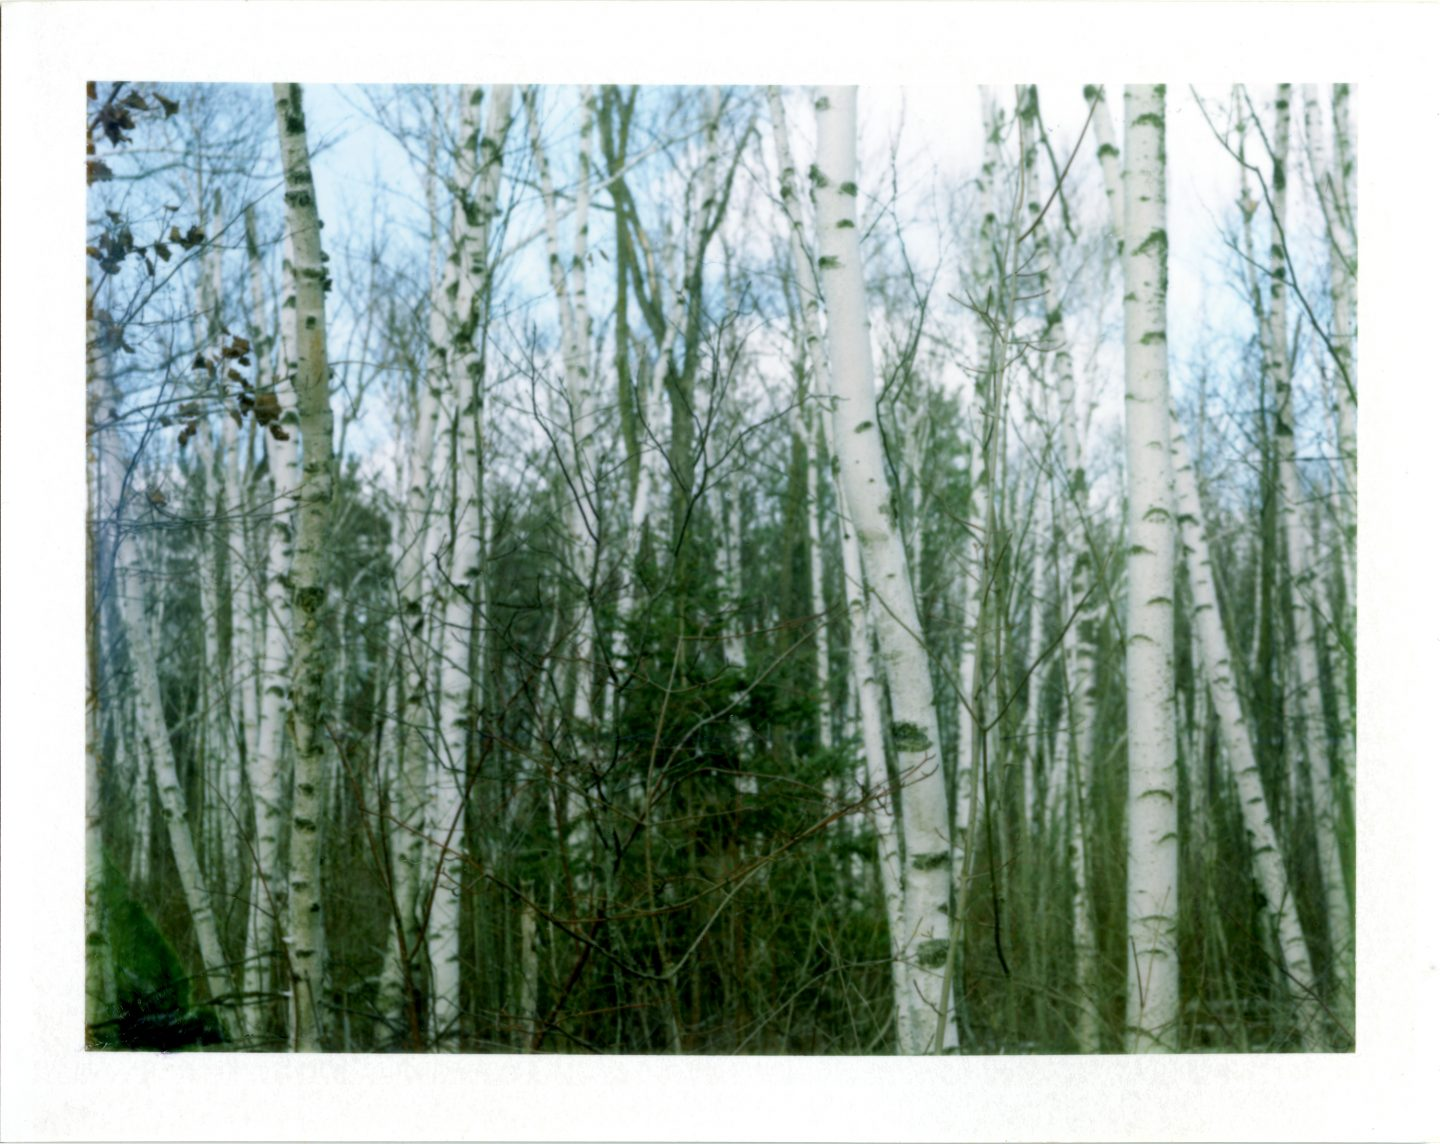 365-6 Crown Graphic 4×5 Fujifilm FP-100C